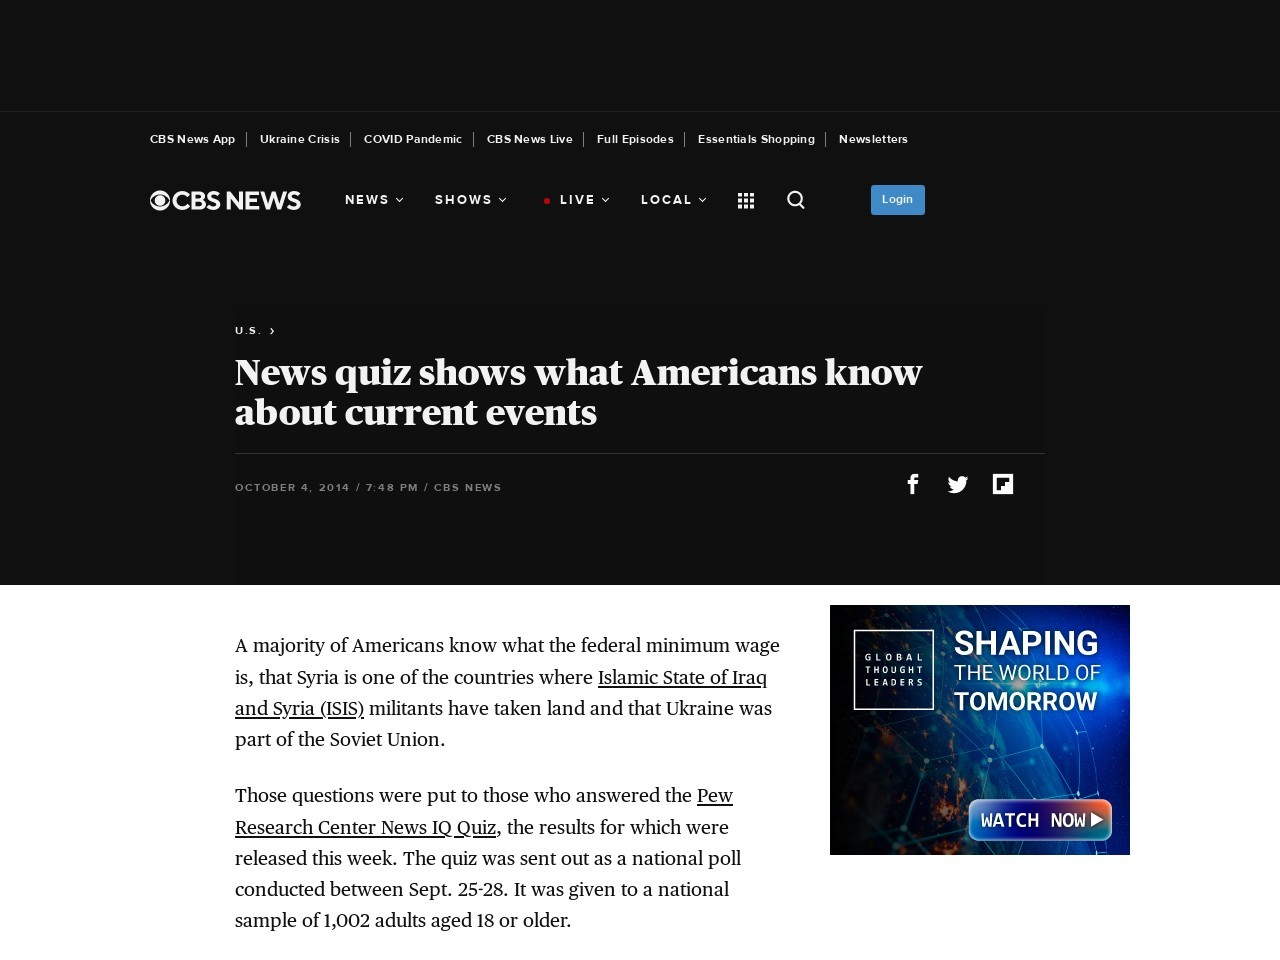 News quiz shows what Americans know about current events